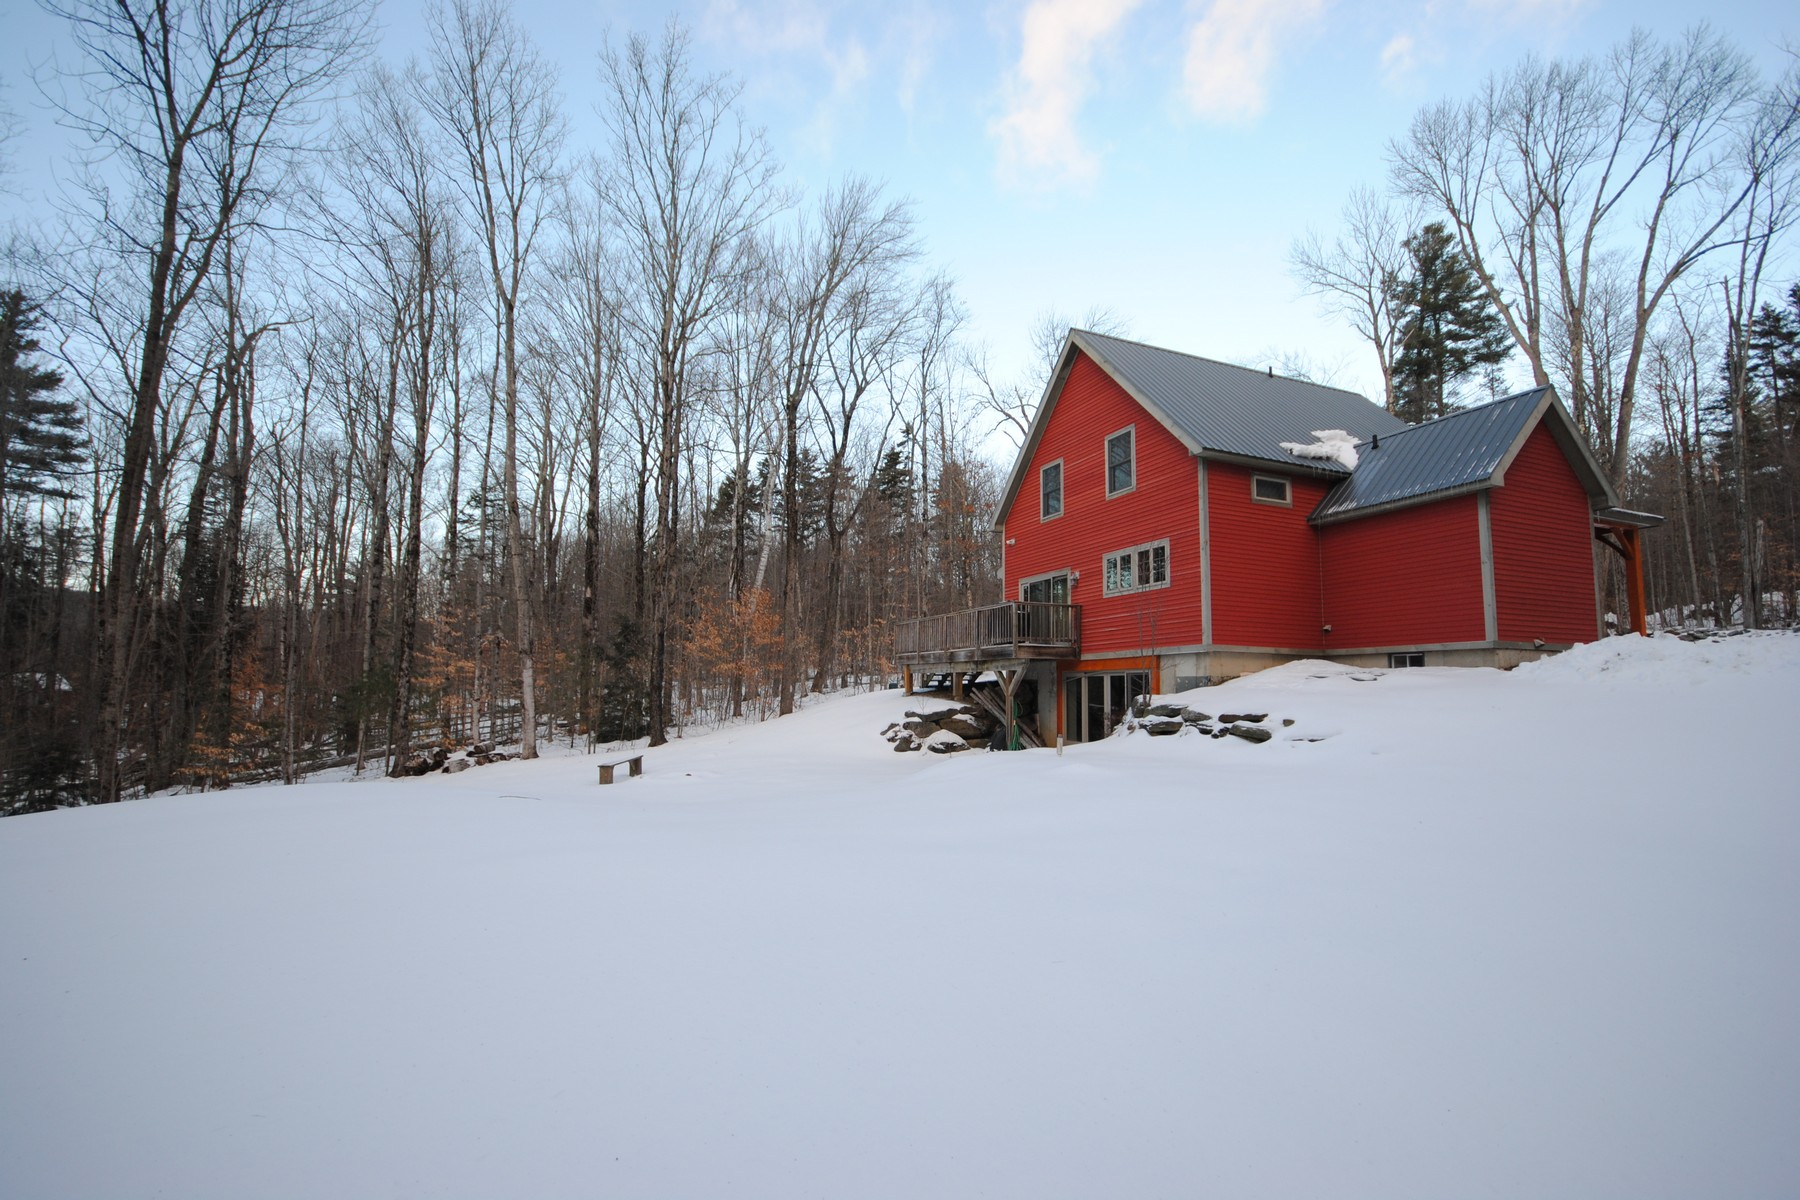 Single Family Homes for Sale at Close to Stratton and Mount Snow 108 Country Lane Wardsboro, Vermont 05355 United States